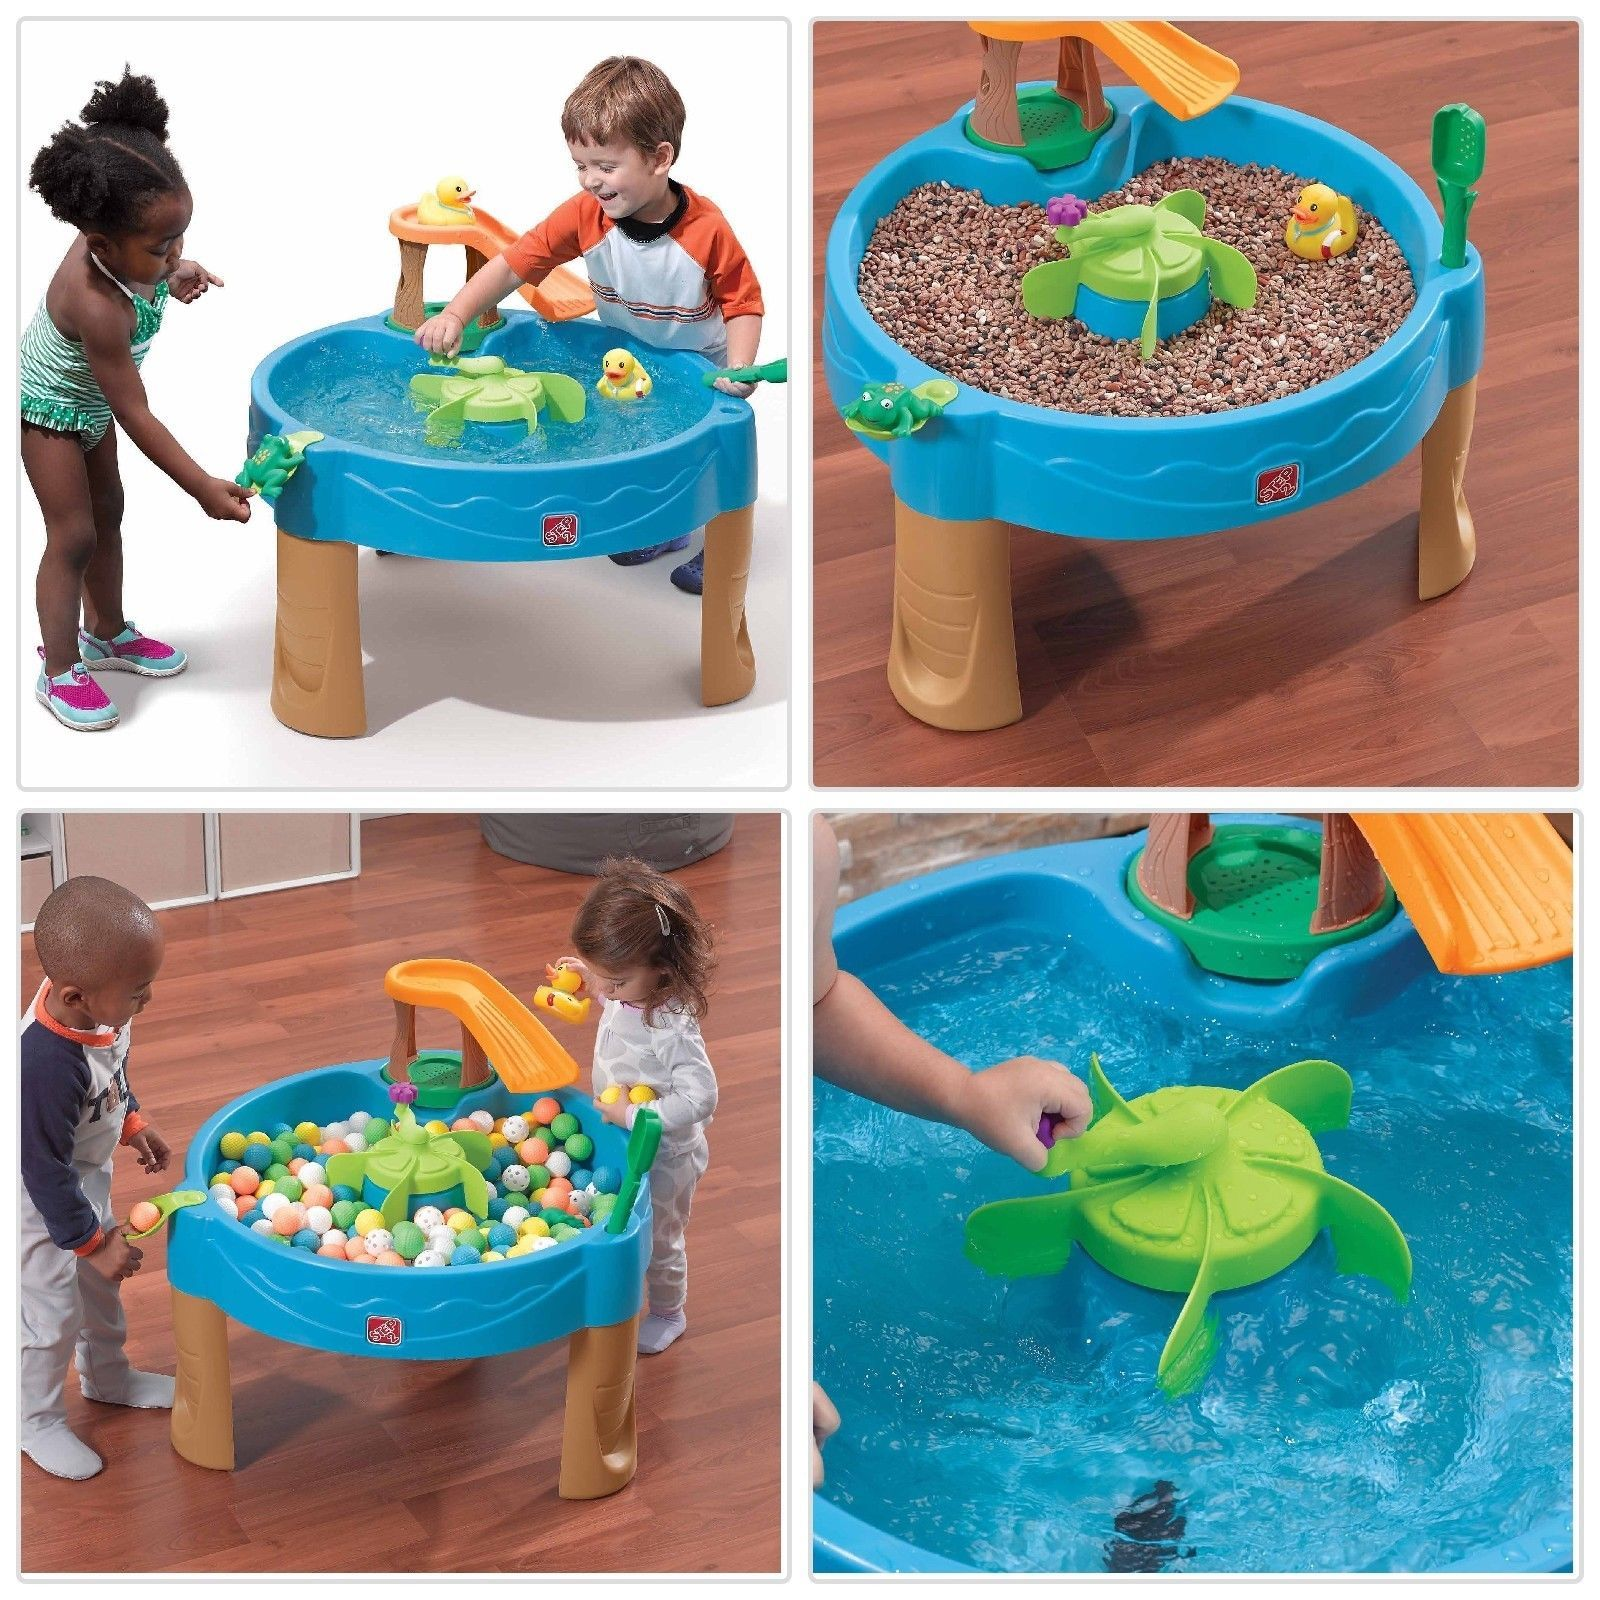 Toys images for kids  Duck Pond Water Table Toddler Splash Play Frog Water Toys Kids